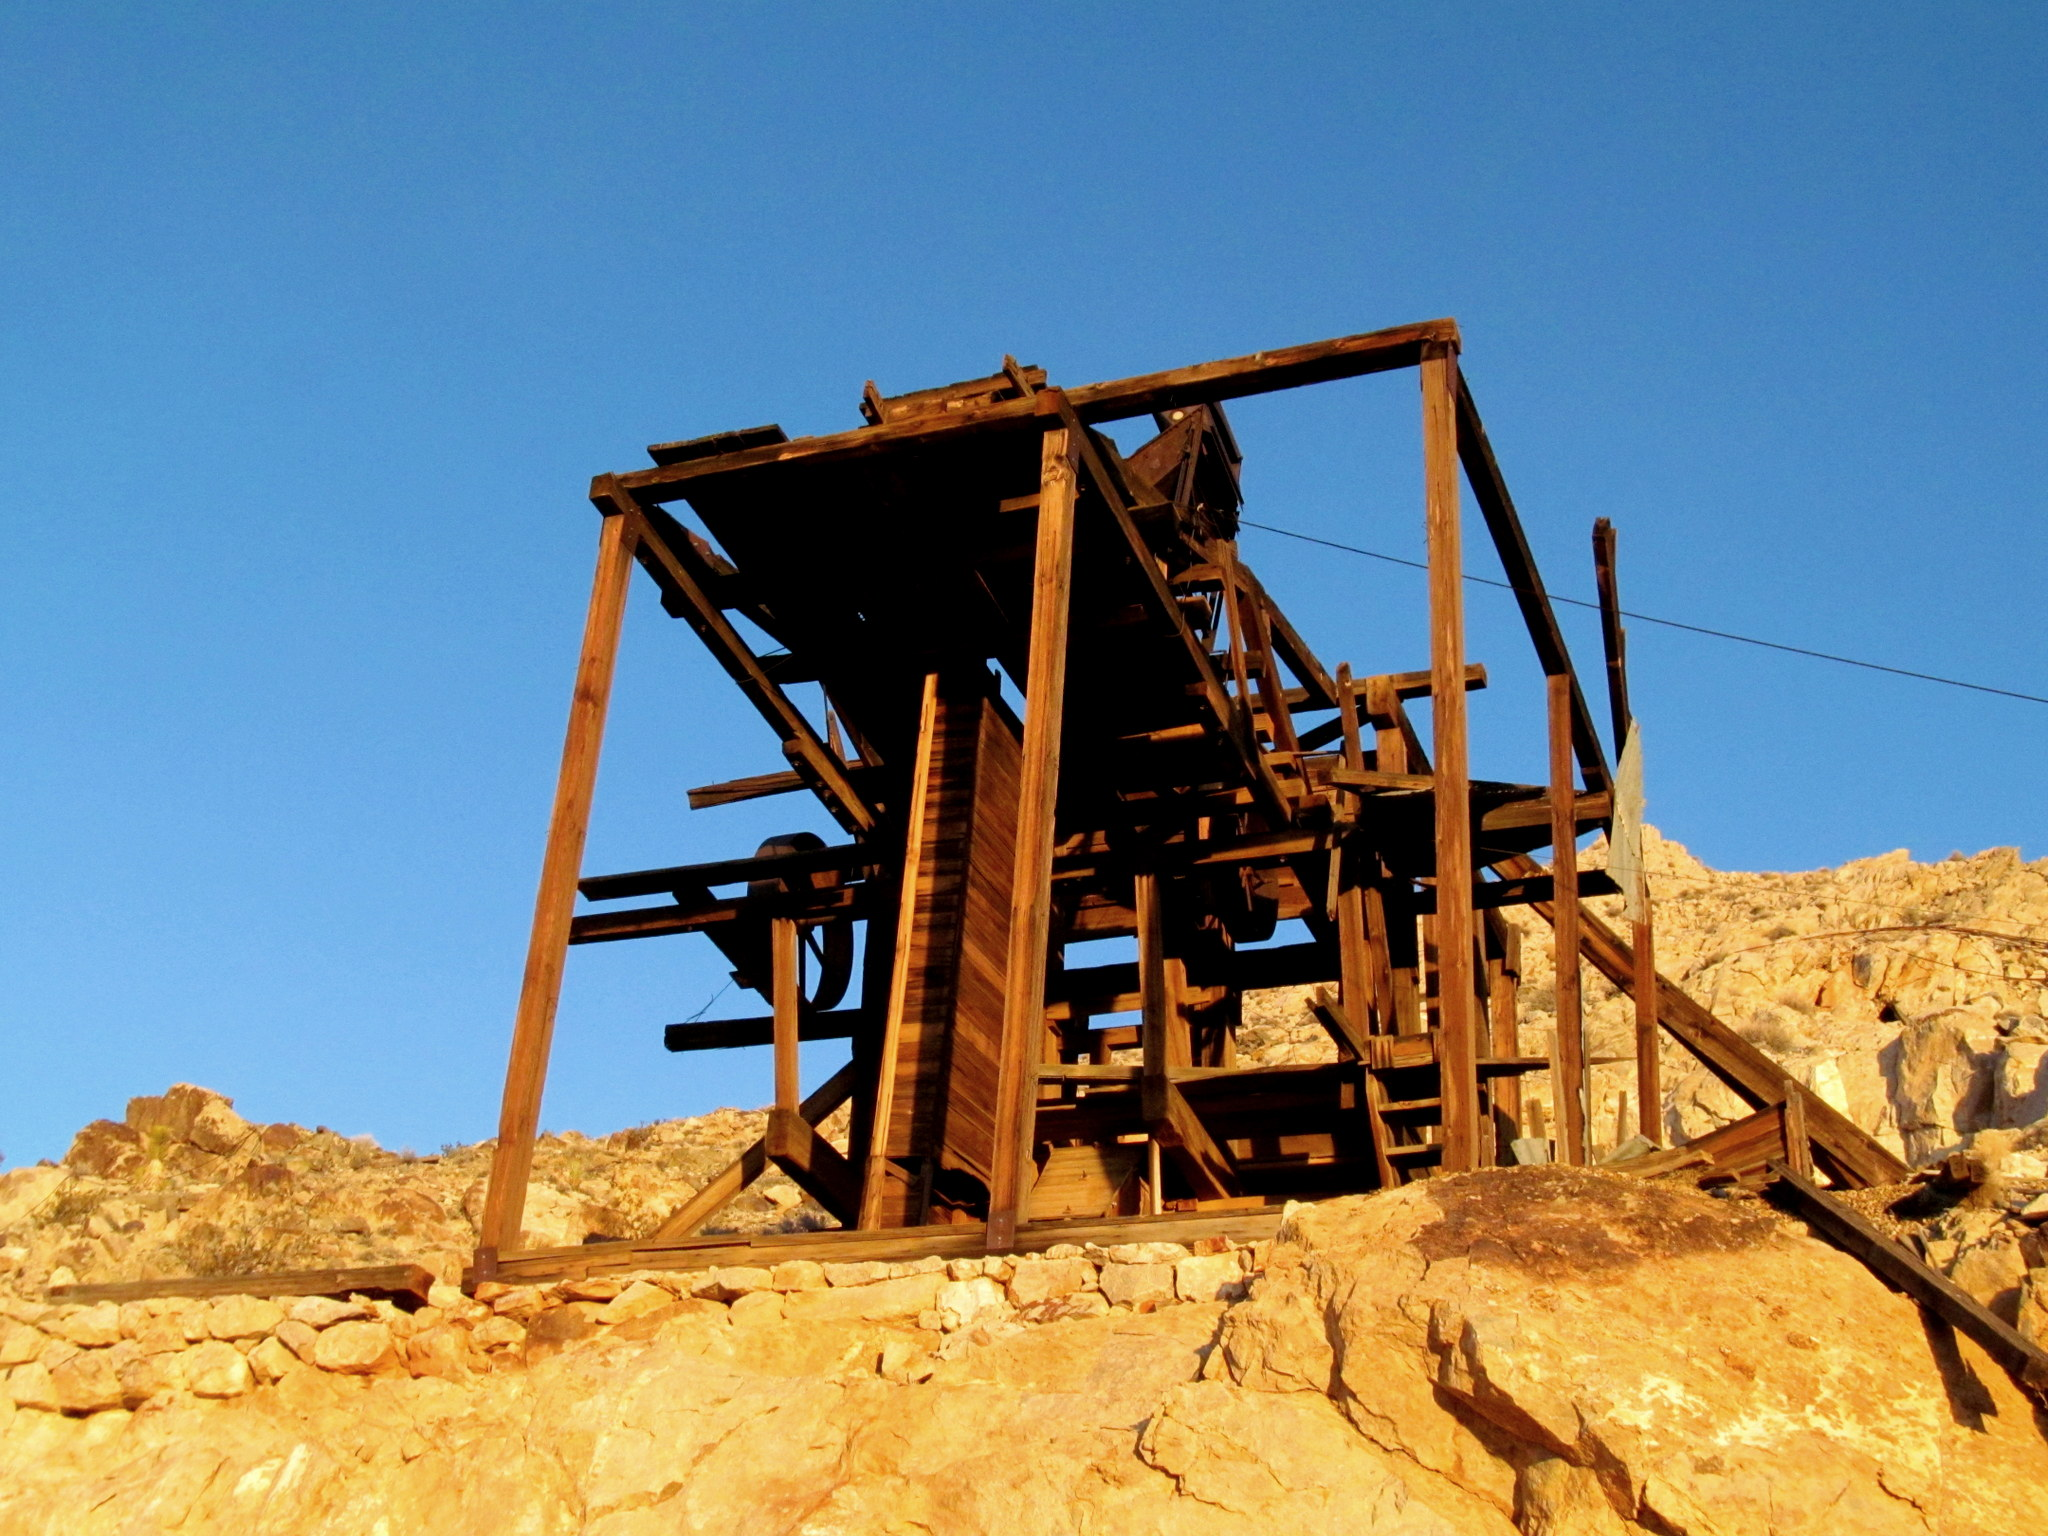 Photo: Ore processing equipment